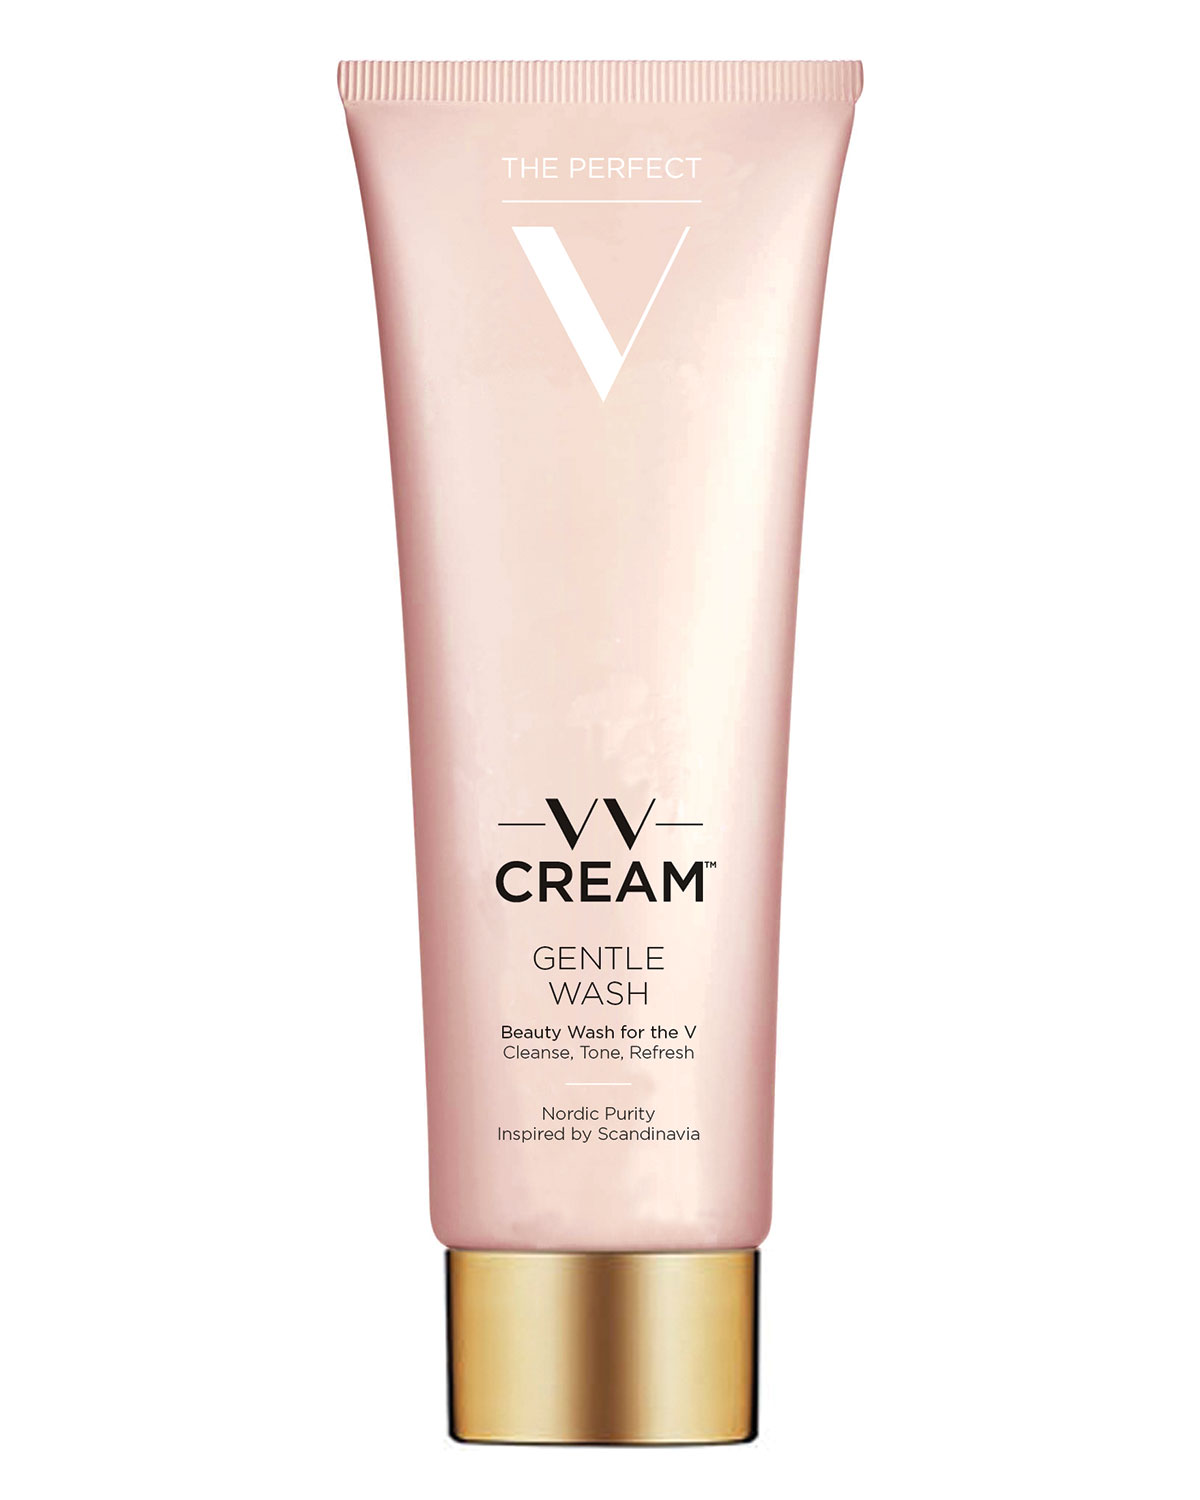 THE PERFECT V Vv Cream Gentle Wash, 3.4 Oz./ 100 Ml